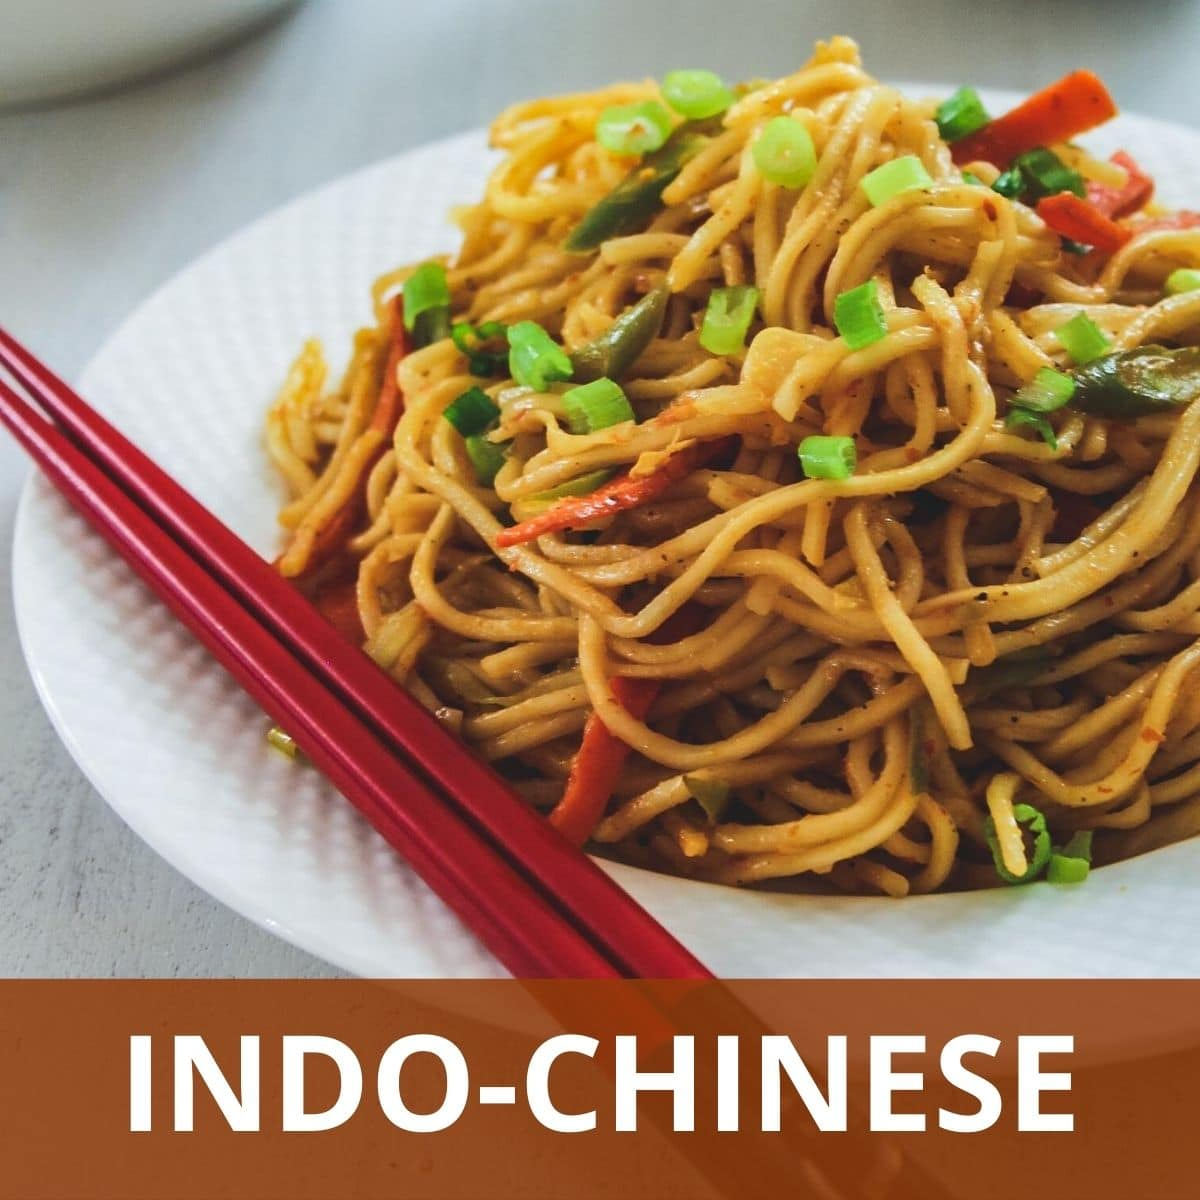 Indo-Chinese